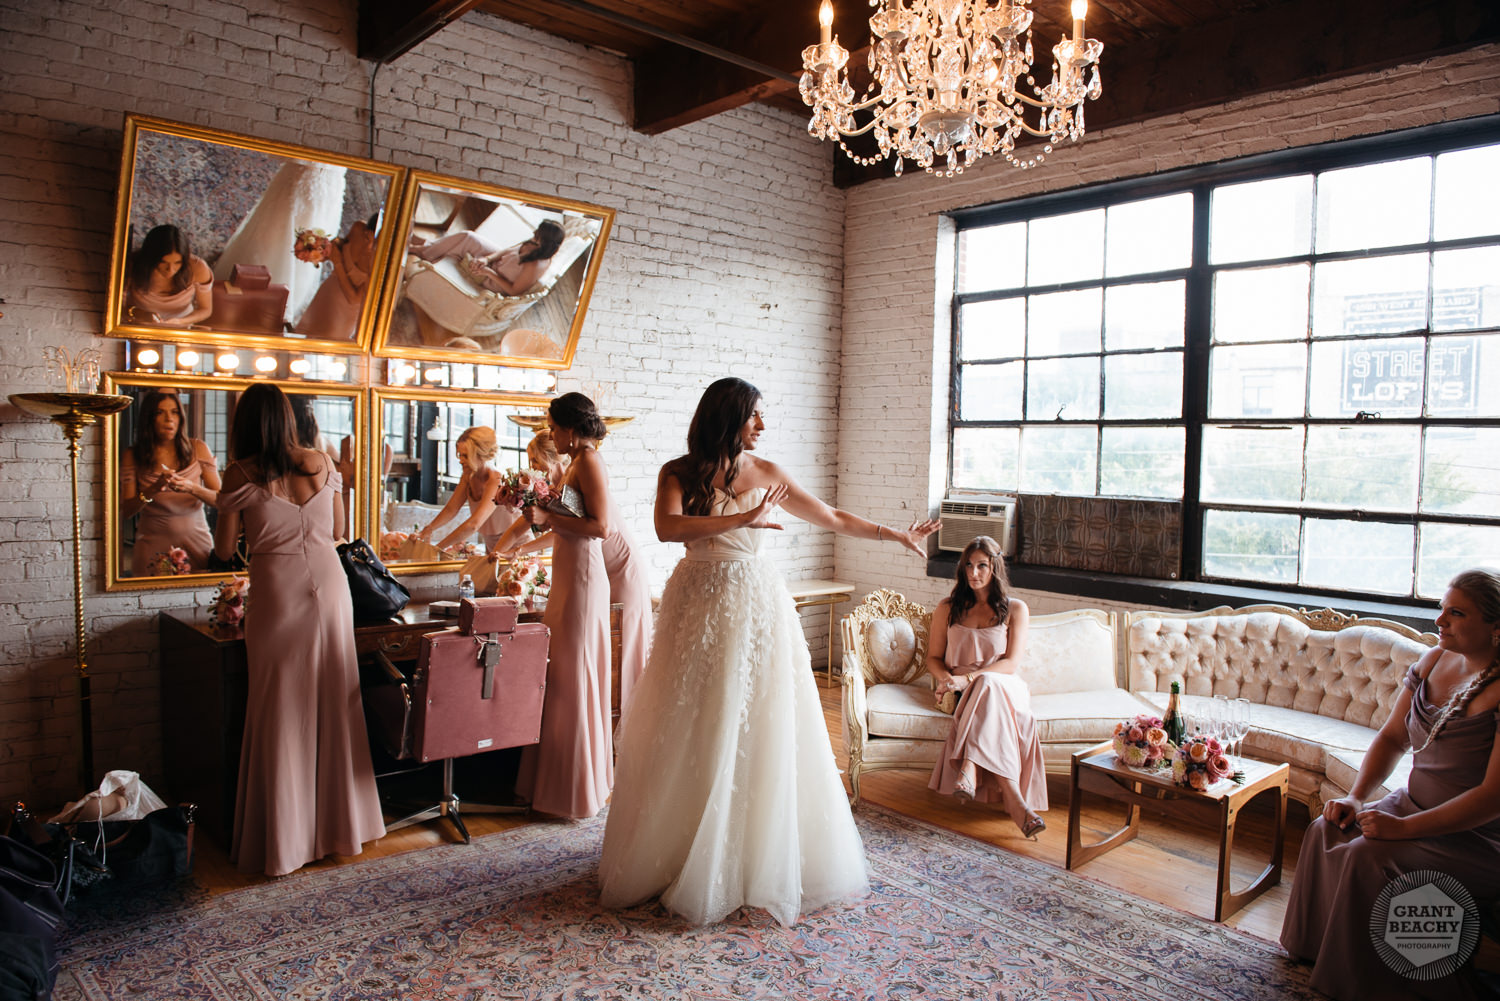 Chicago wedding photographer Grant Beachy-38.jpg